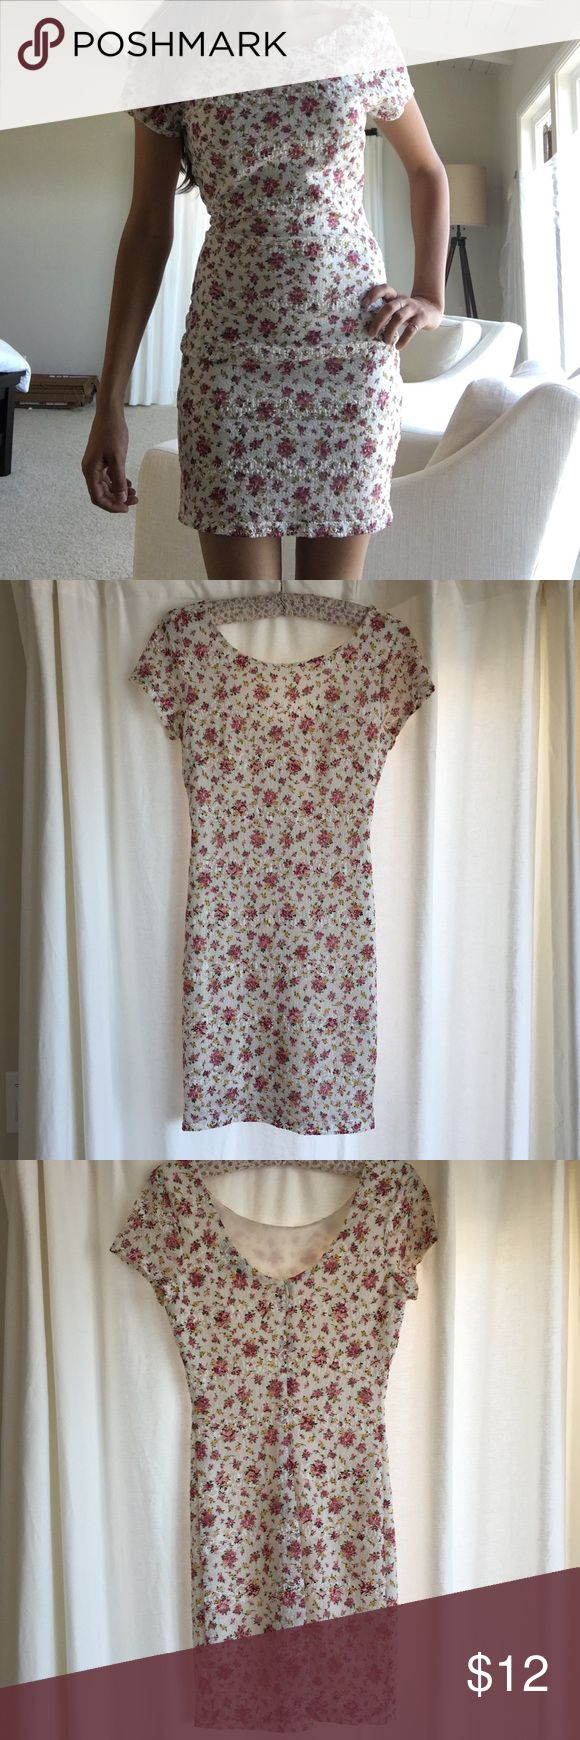 Laced floral dress Lace form fitting dress with floral print. Good quality material and very comfortable. High neckline and scoops in the back. Has back zipper. Can be worn casually or semi-formal! Forever 21 Dresses Mini